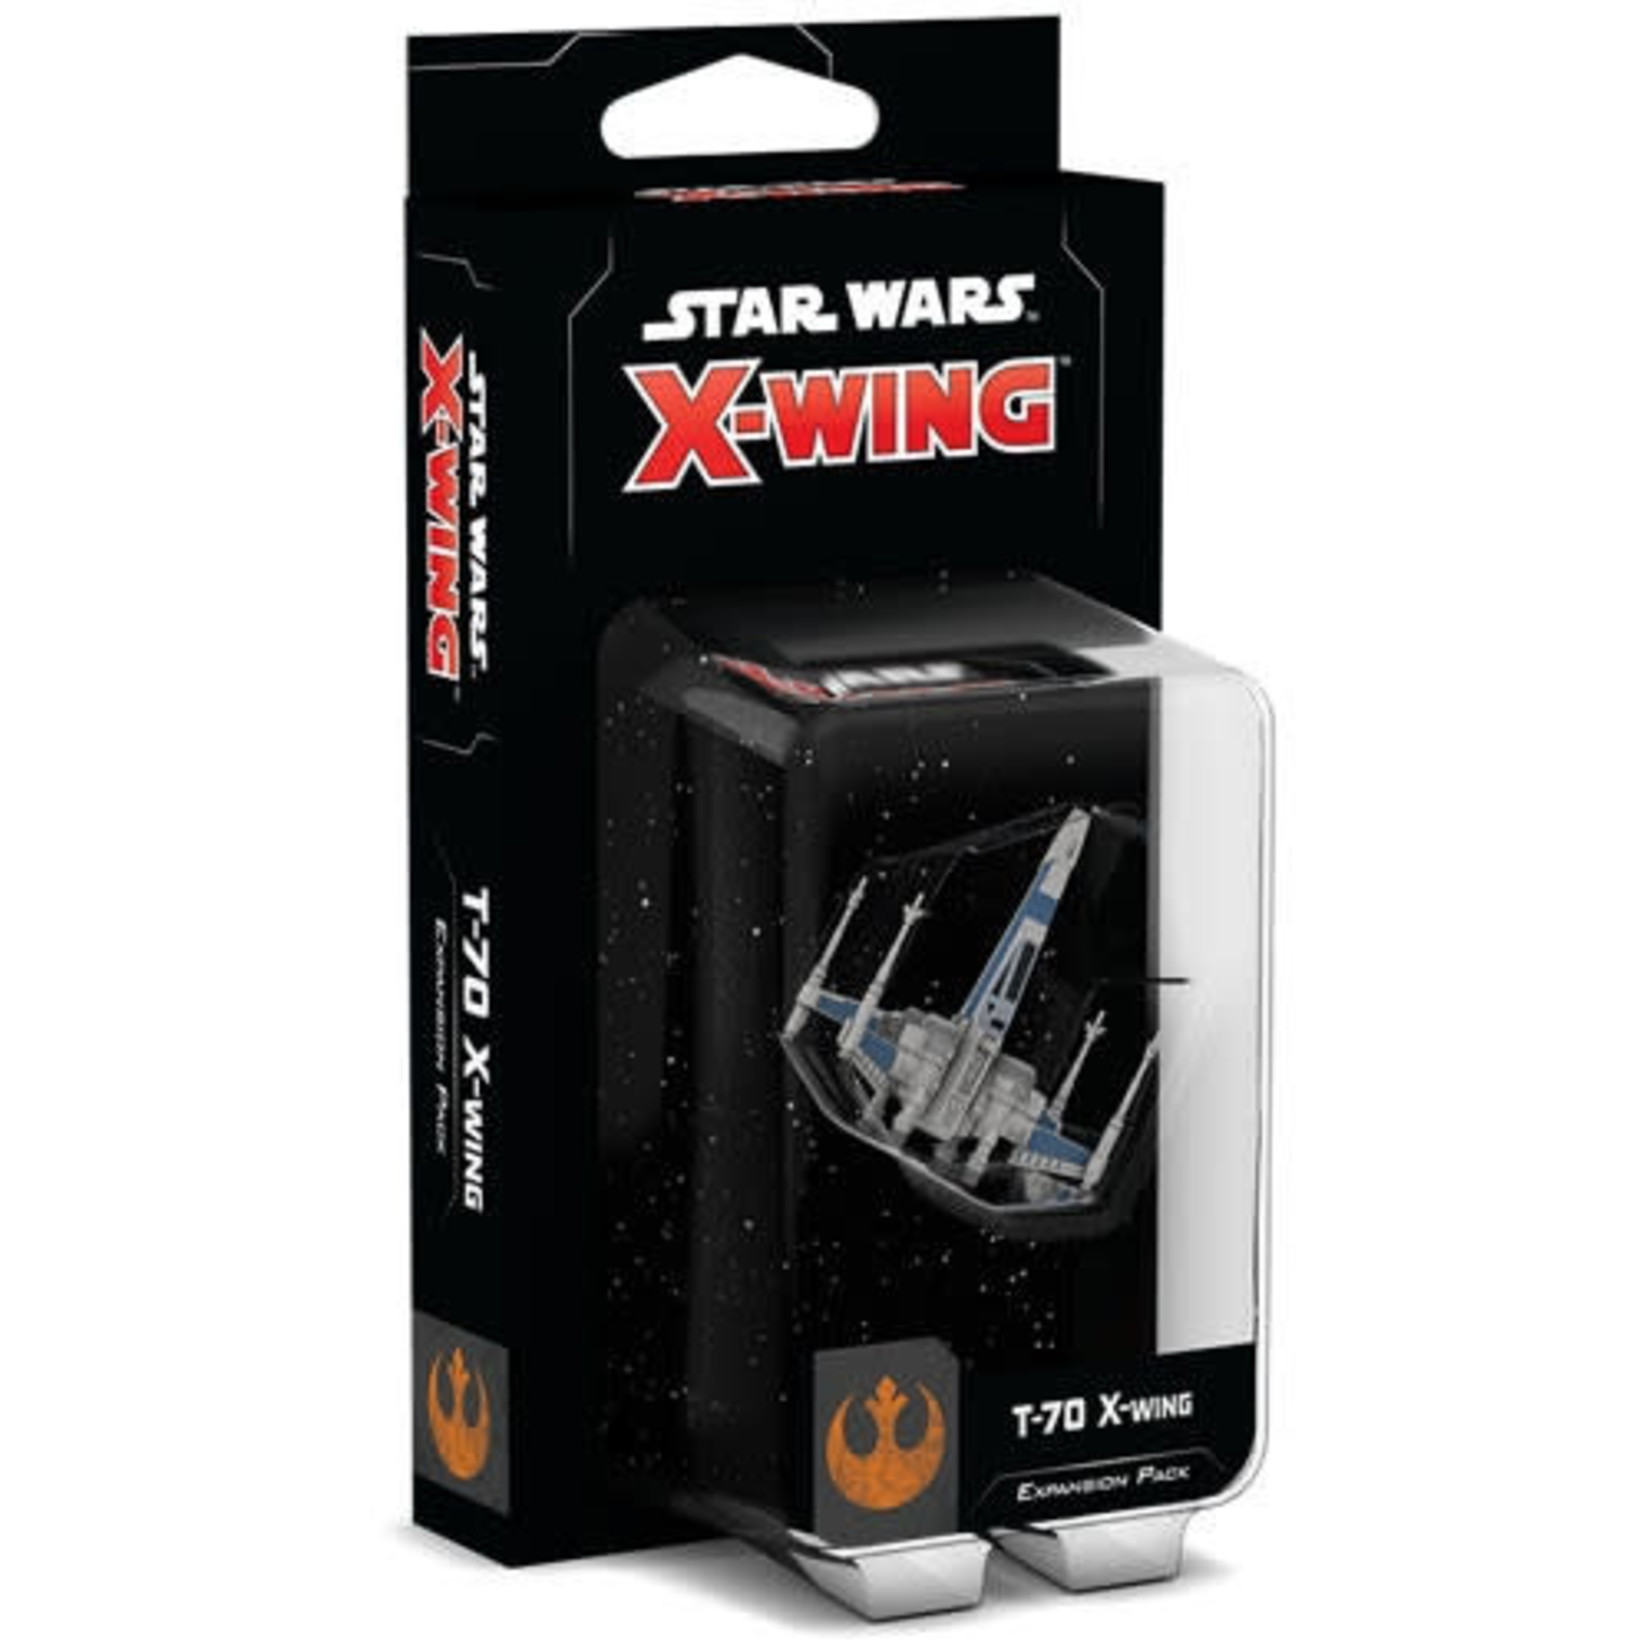 Star Wars X-Wing 2e: T-70 X-WIng Expansion Pack